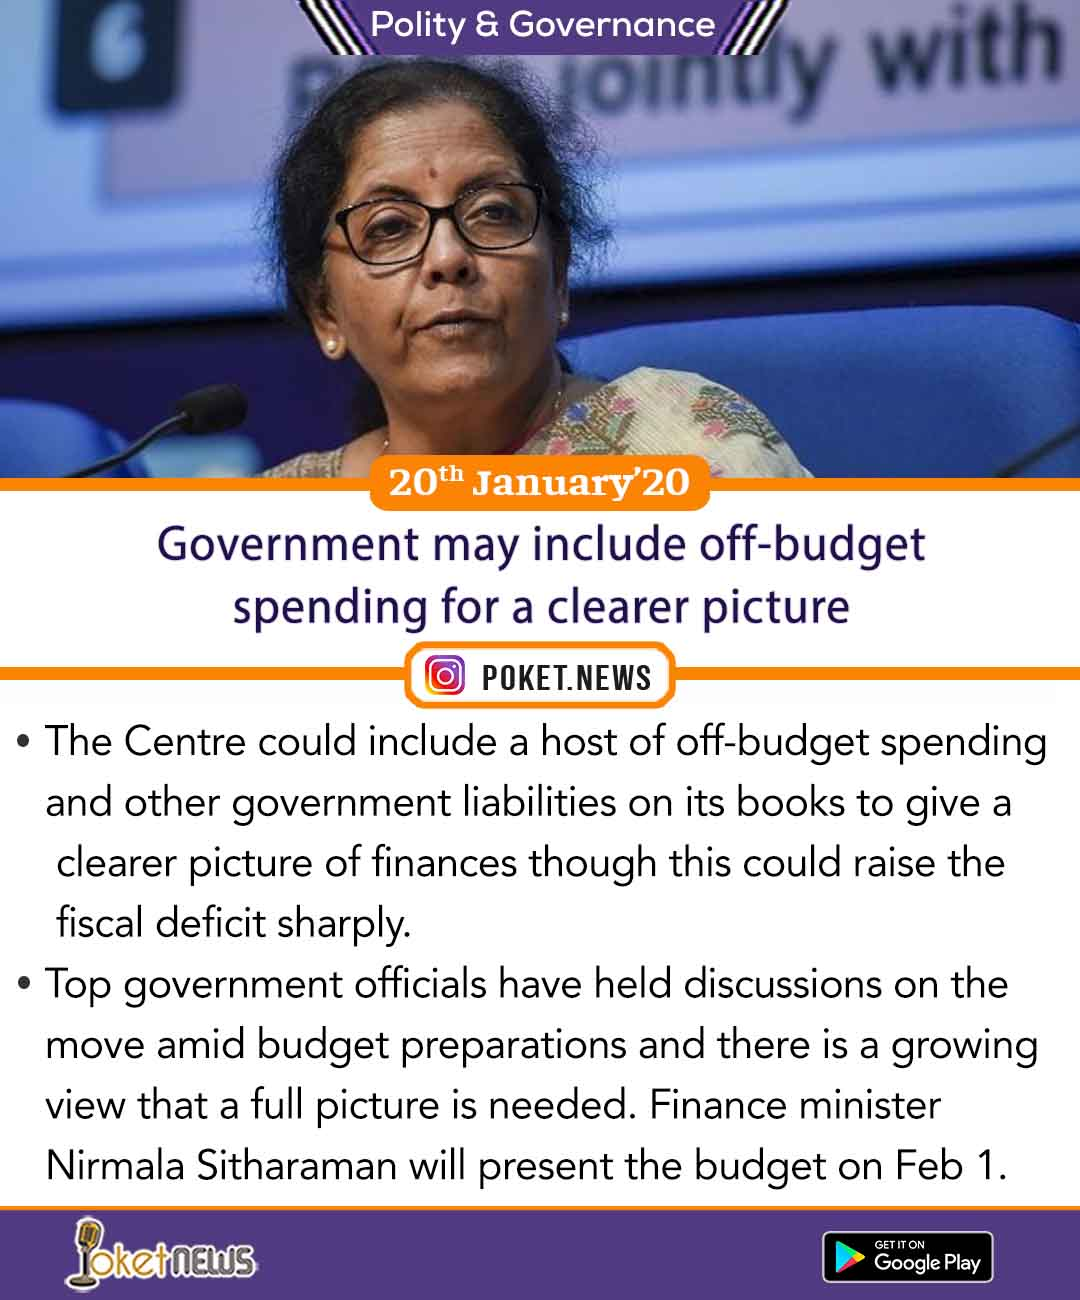 Government may include off-budget spending for a clearer picture